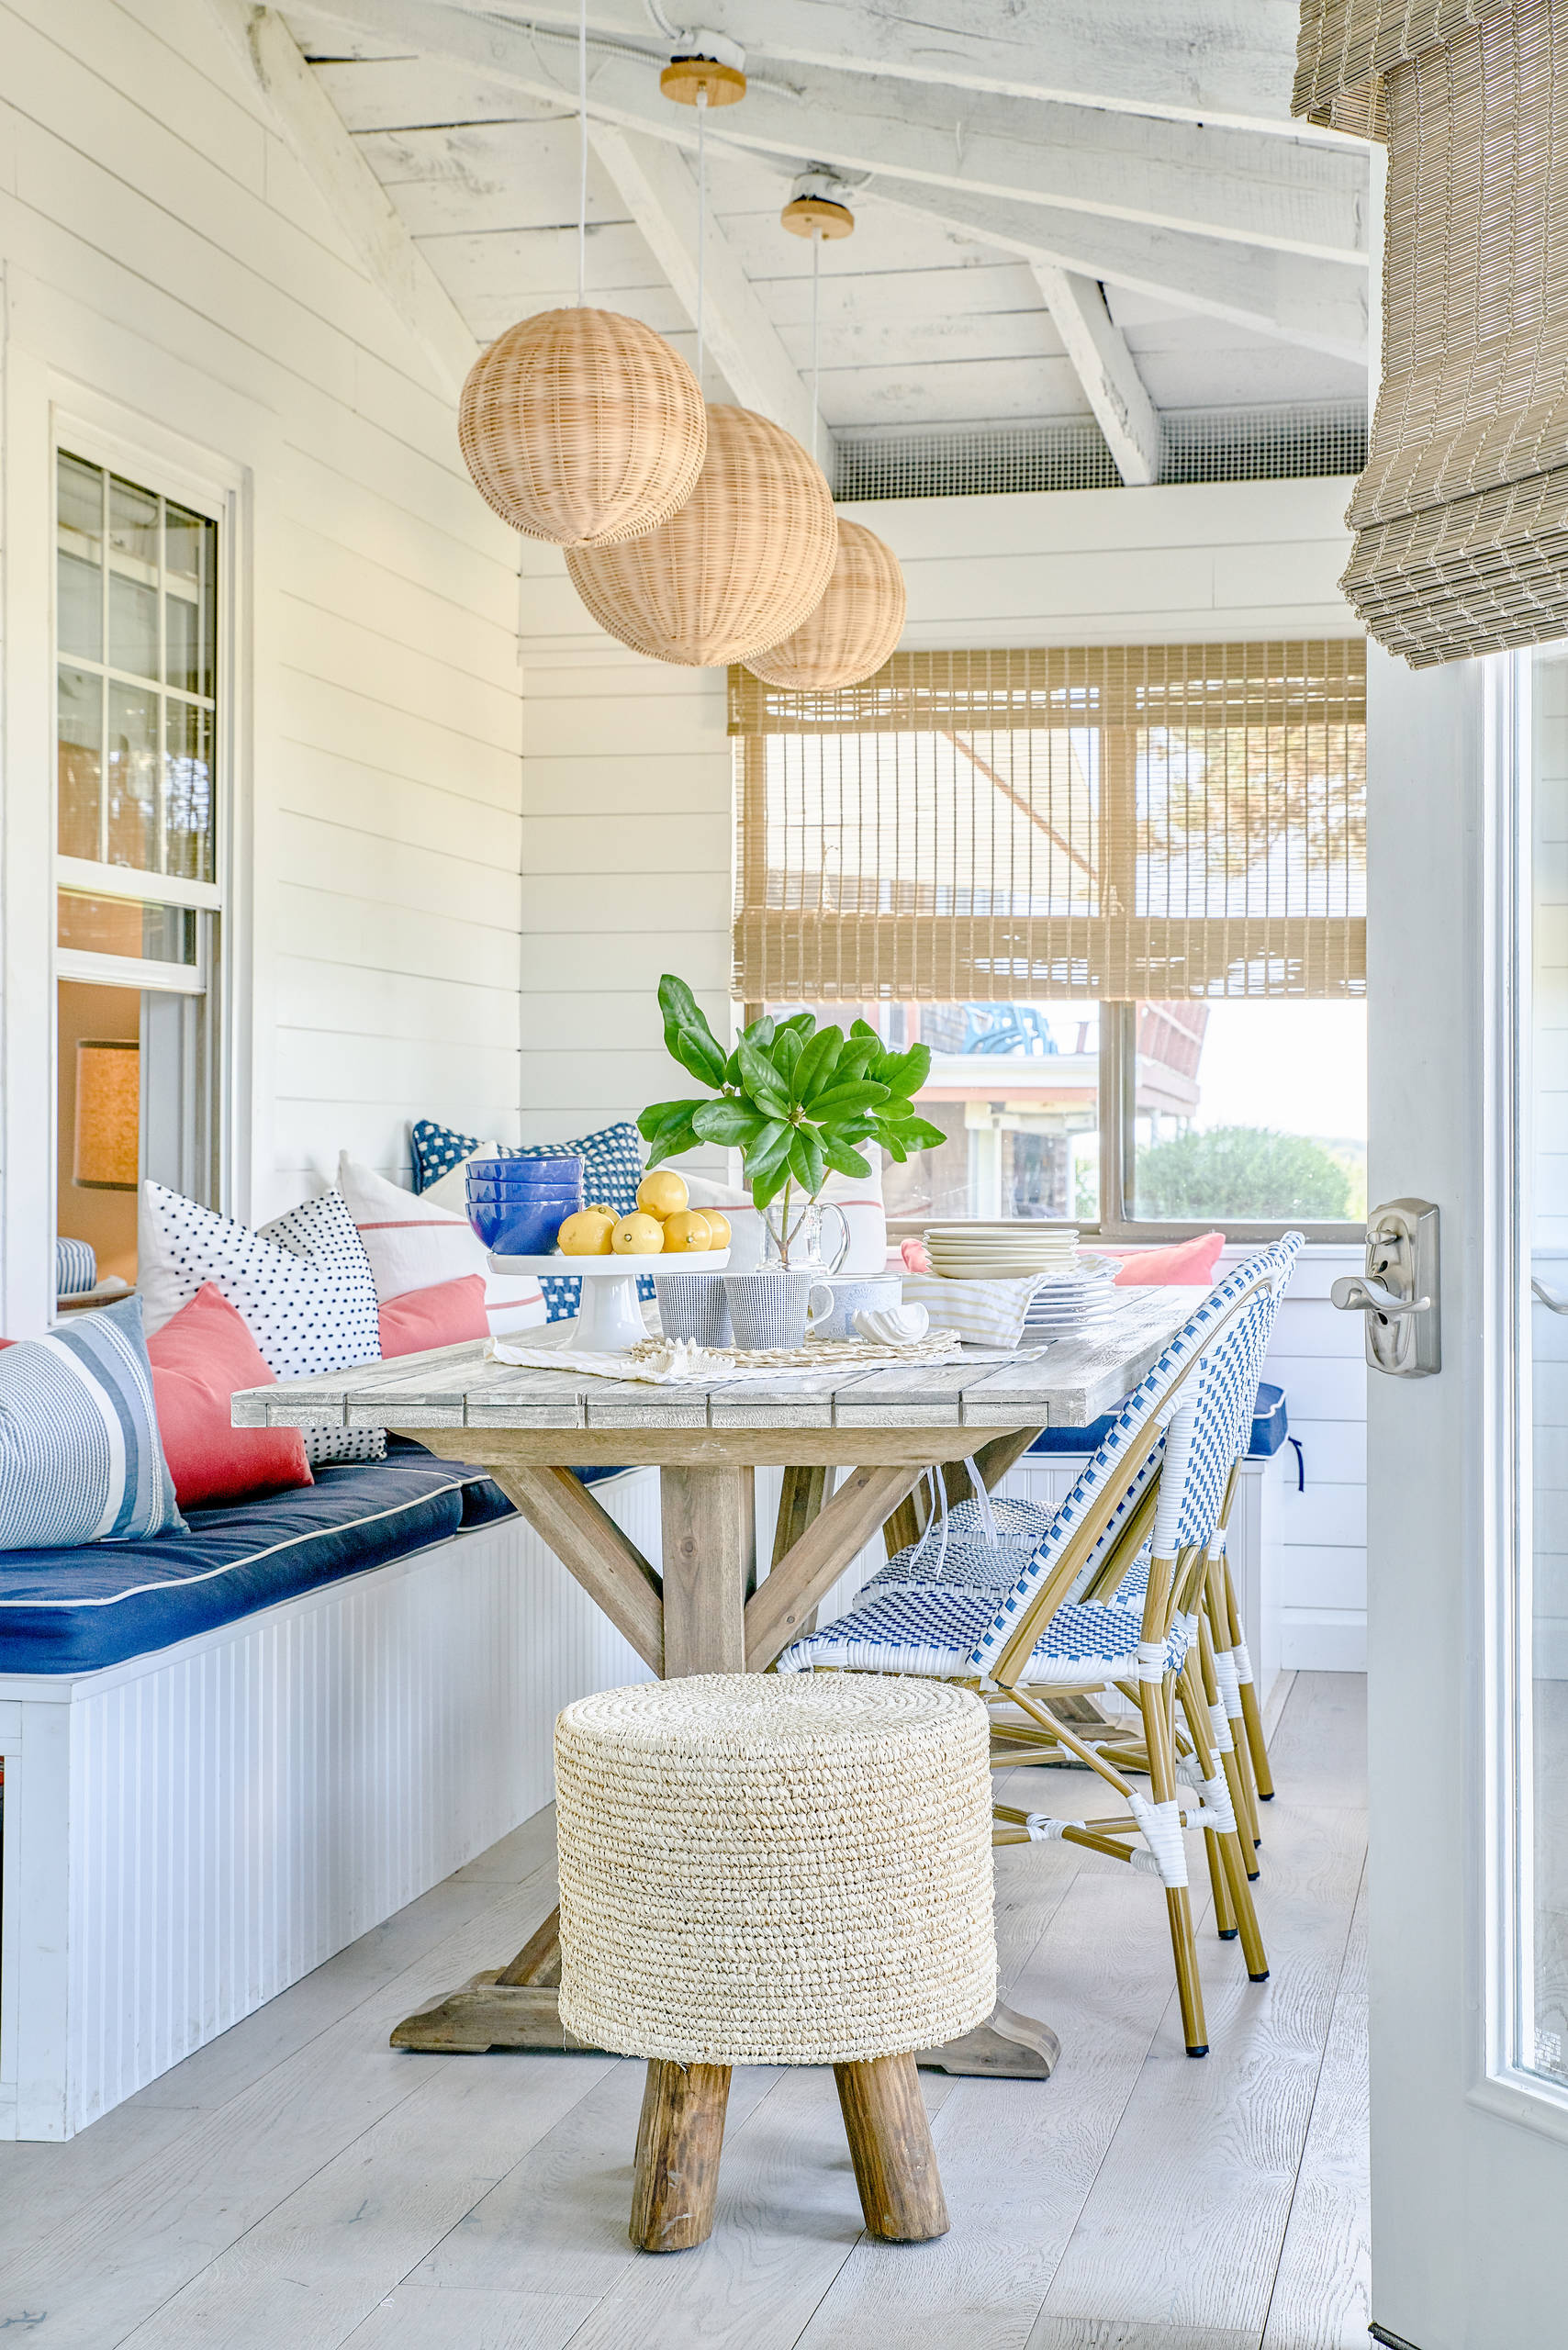 75 Beautiful Small Screened In Porch Pictures Ideas March 2021 Houzz